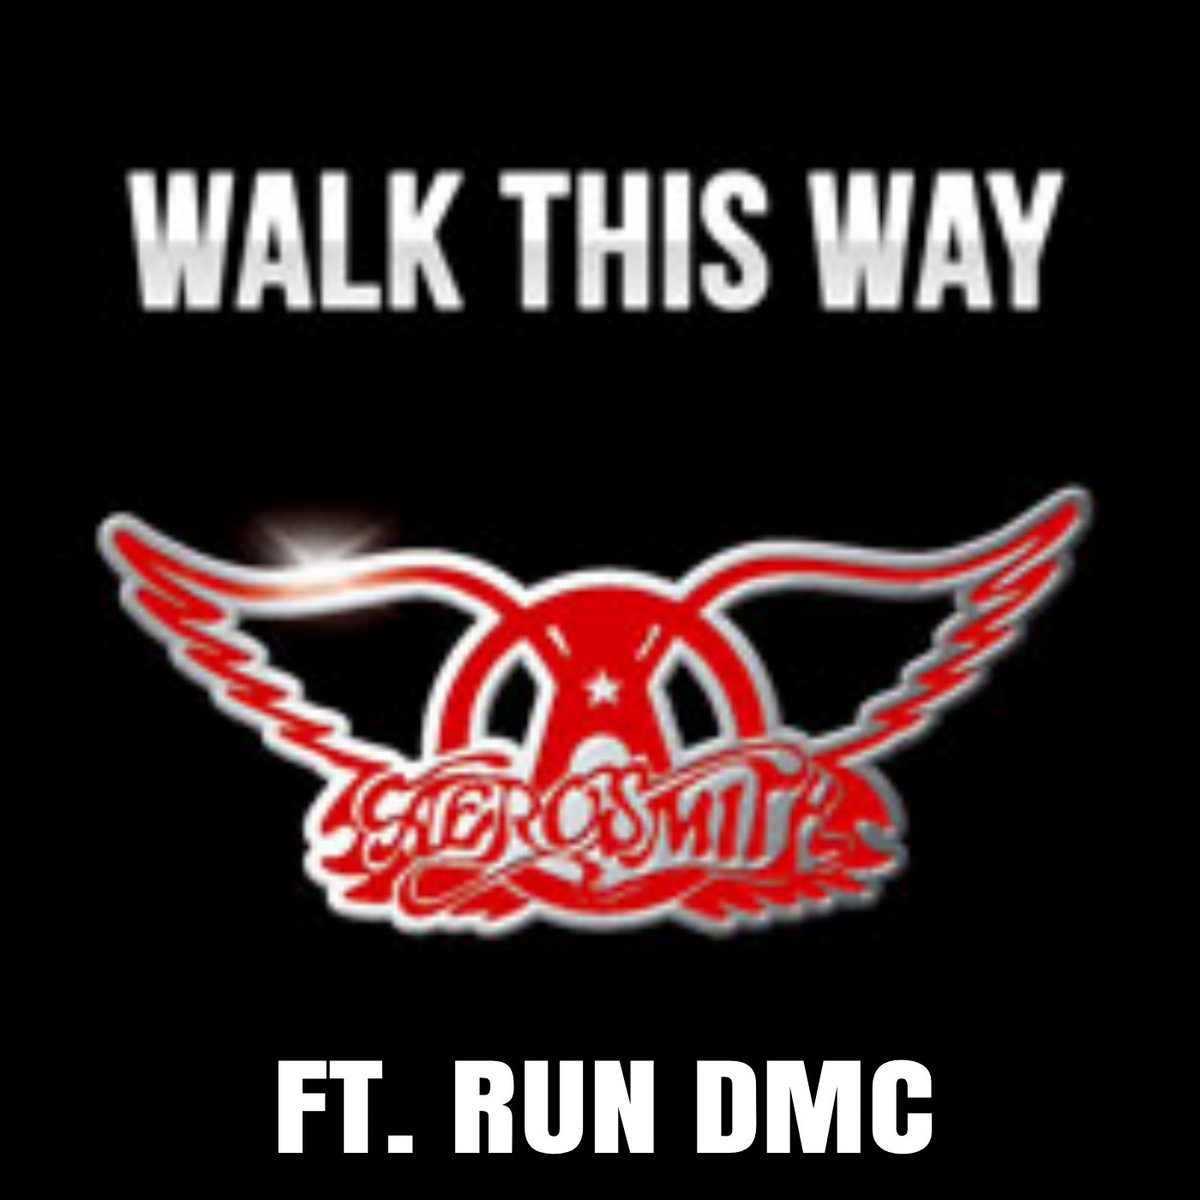 WALK THIS WAY (EXTENDED REMIX) By M Starr | Mell Starr